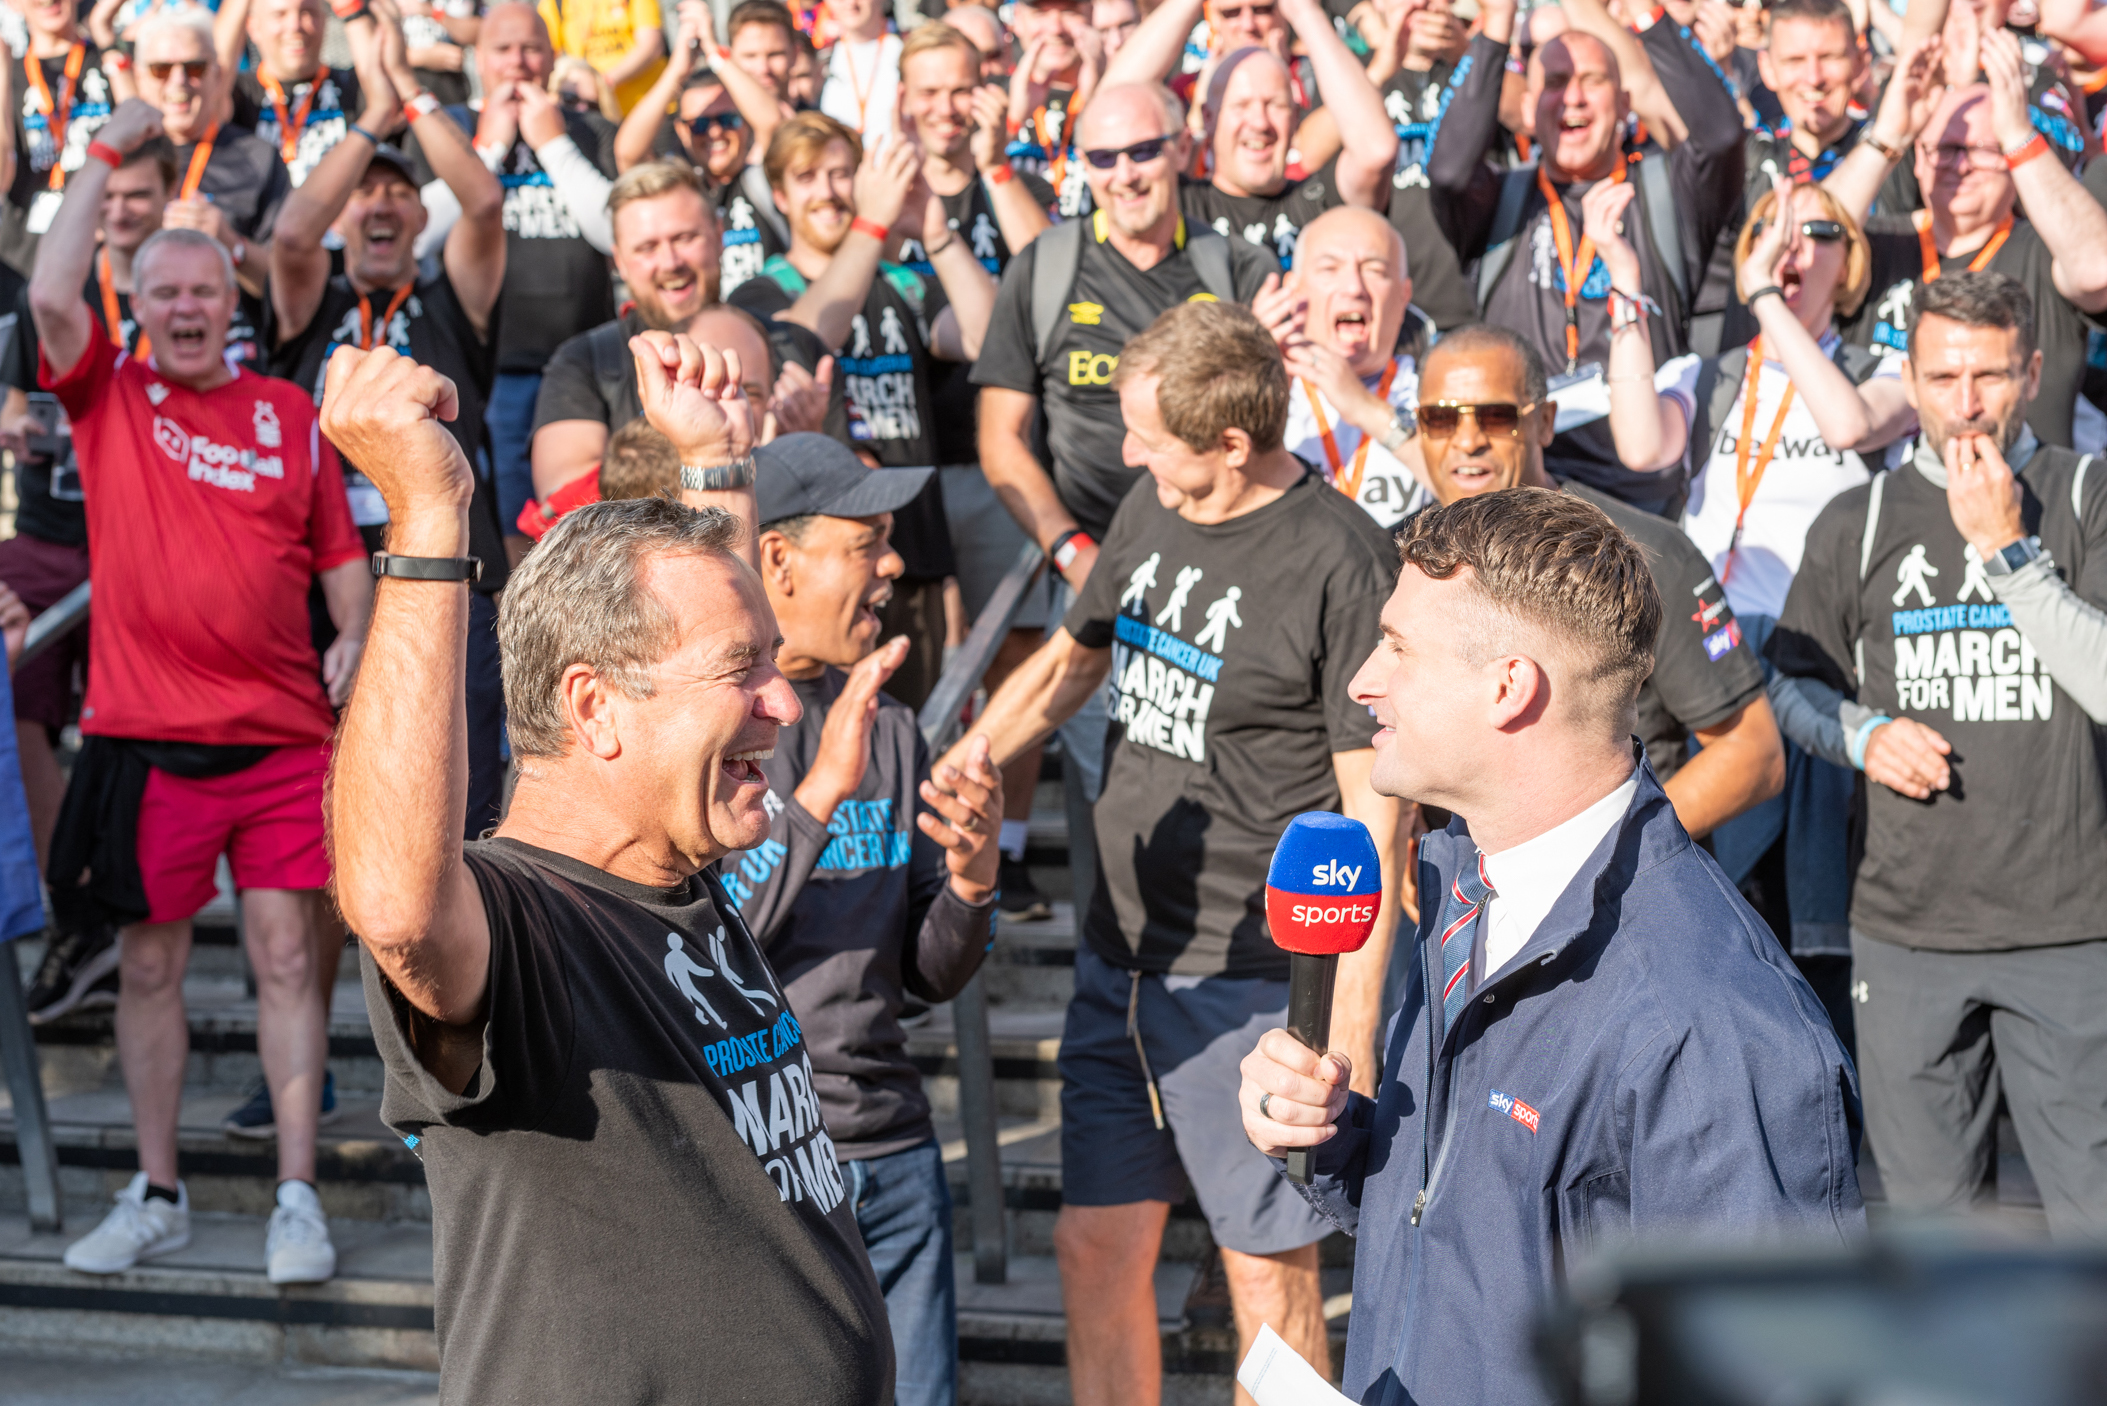 Jeff Stelling celebrates a fundraising goal for Prostate Cancer UK